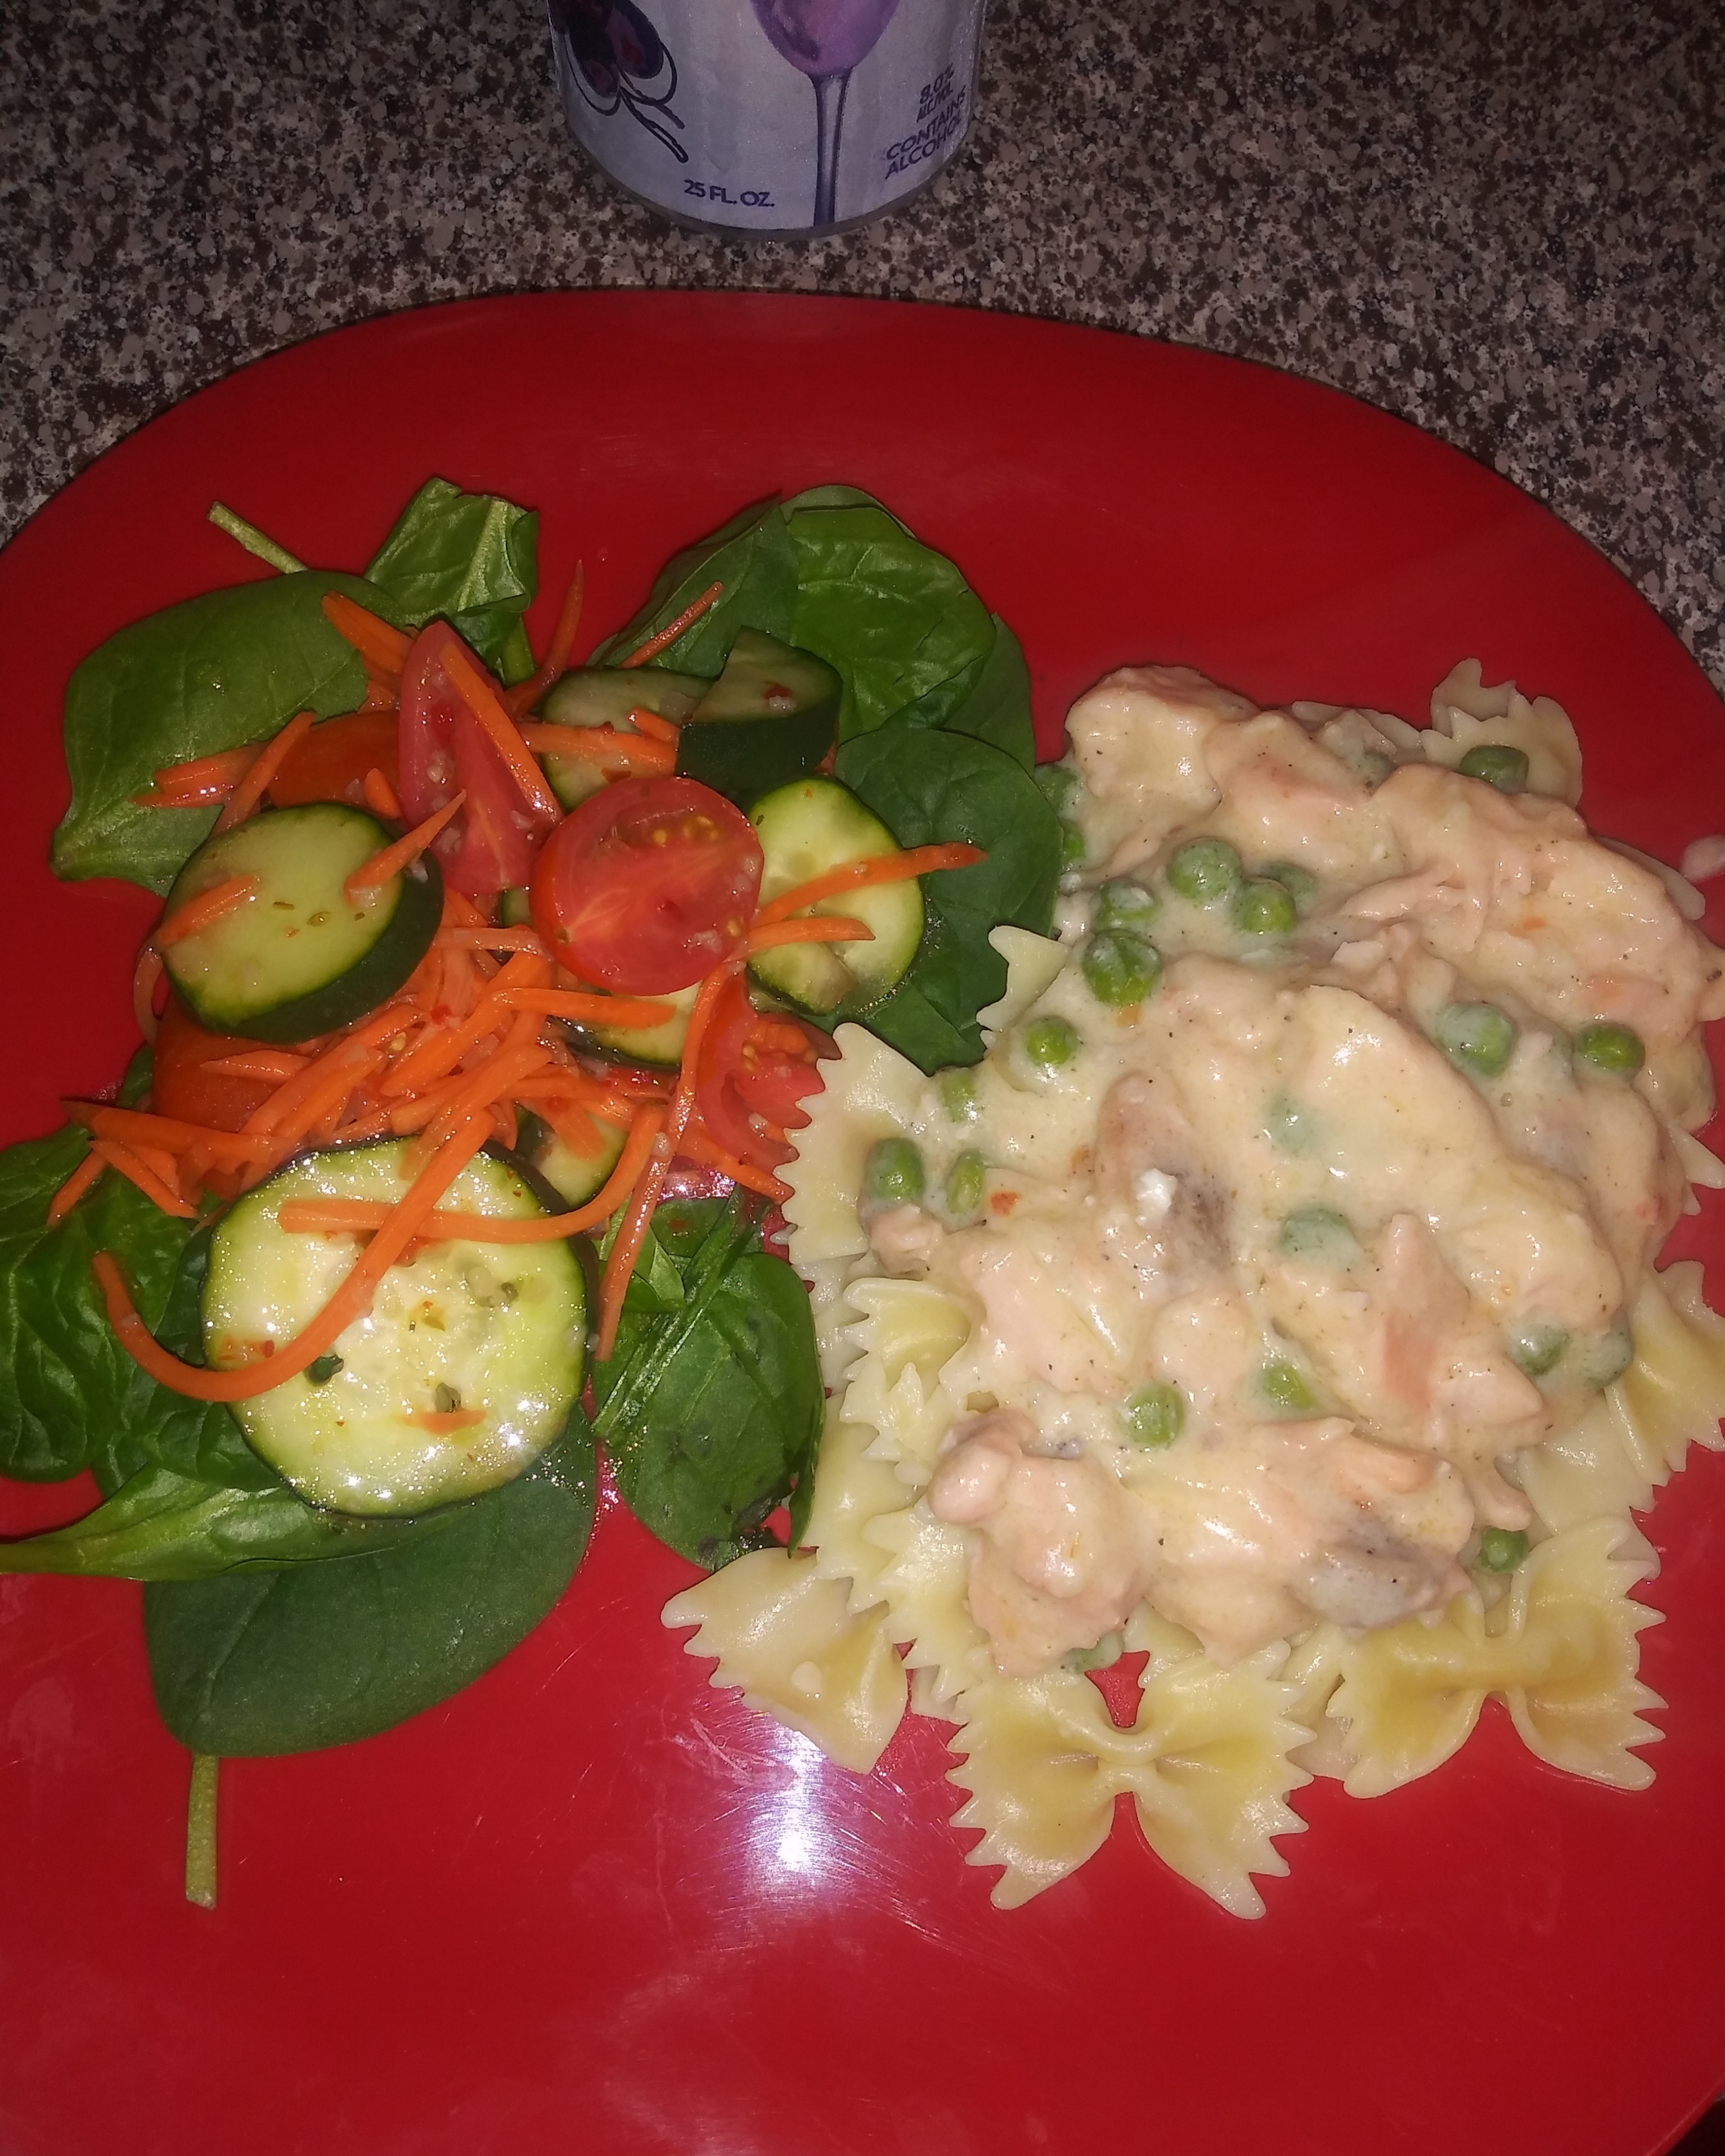 Creamy Smoked Salmon Pasta Briana Ray-Williams